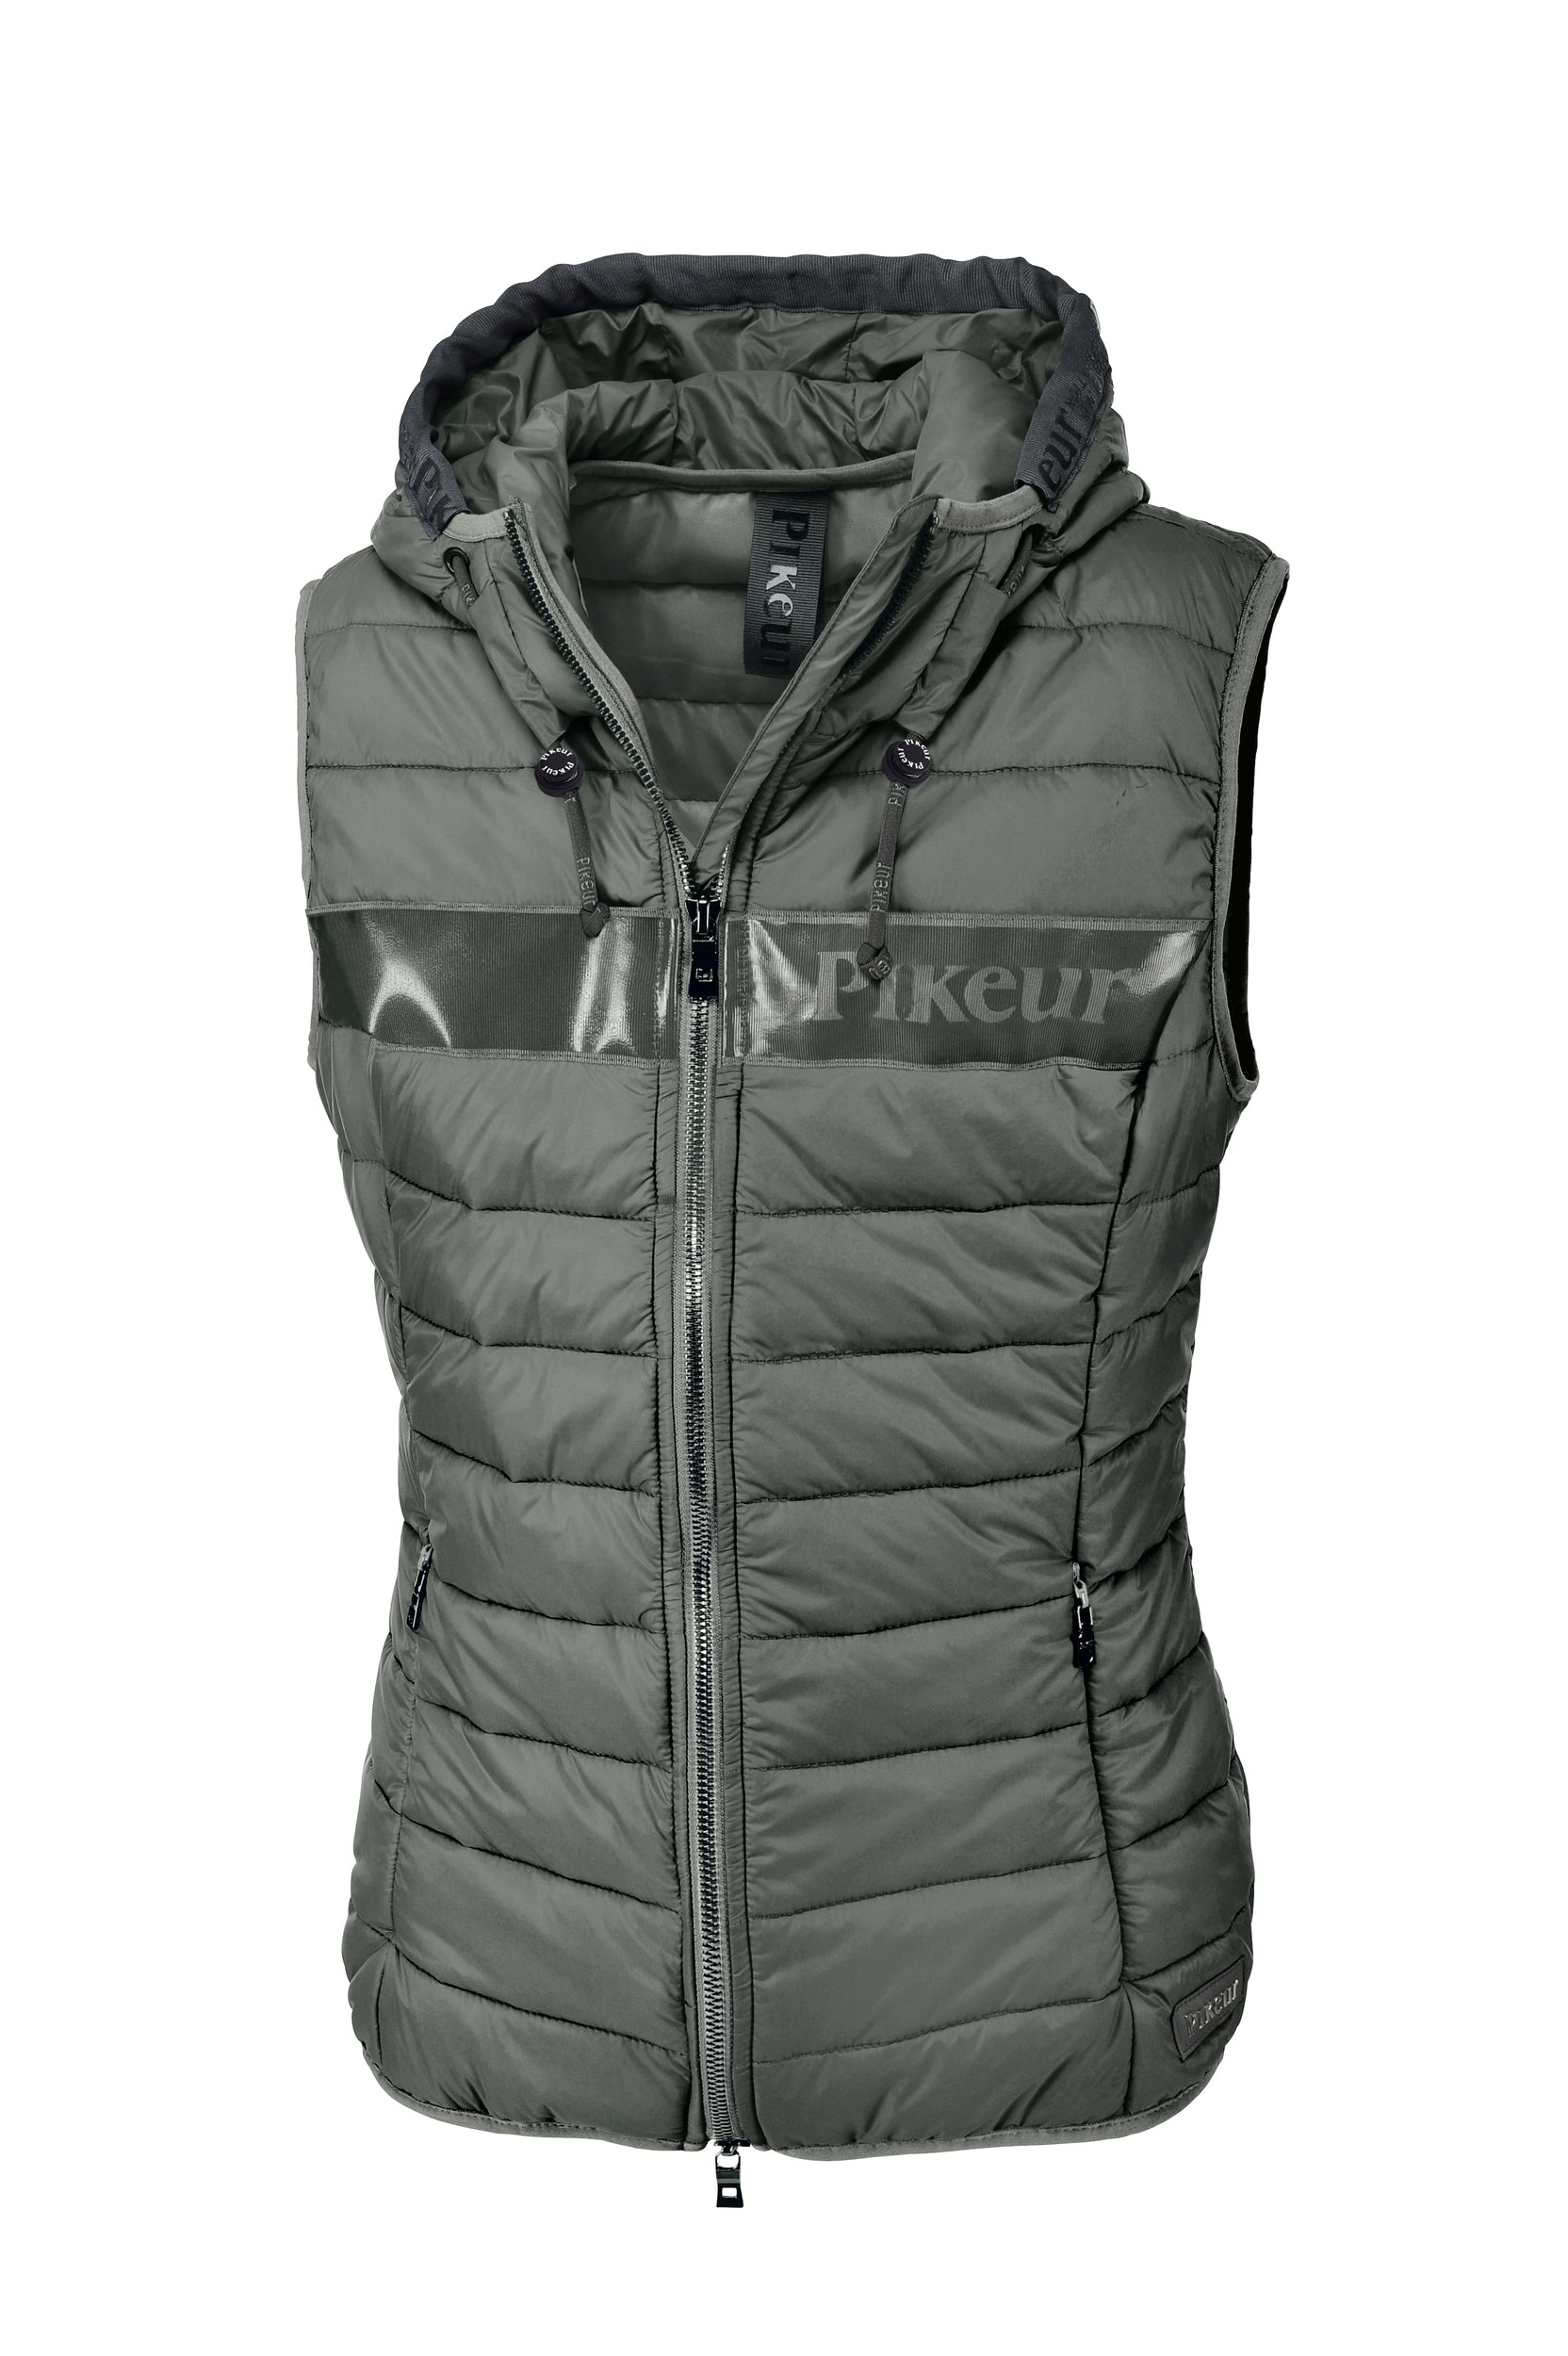 Pikeur SS20 New Generation Jess quilted Gilet - laurel green - Divine Equestrian